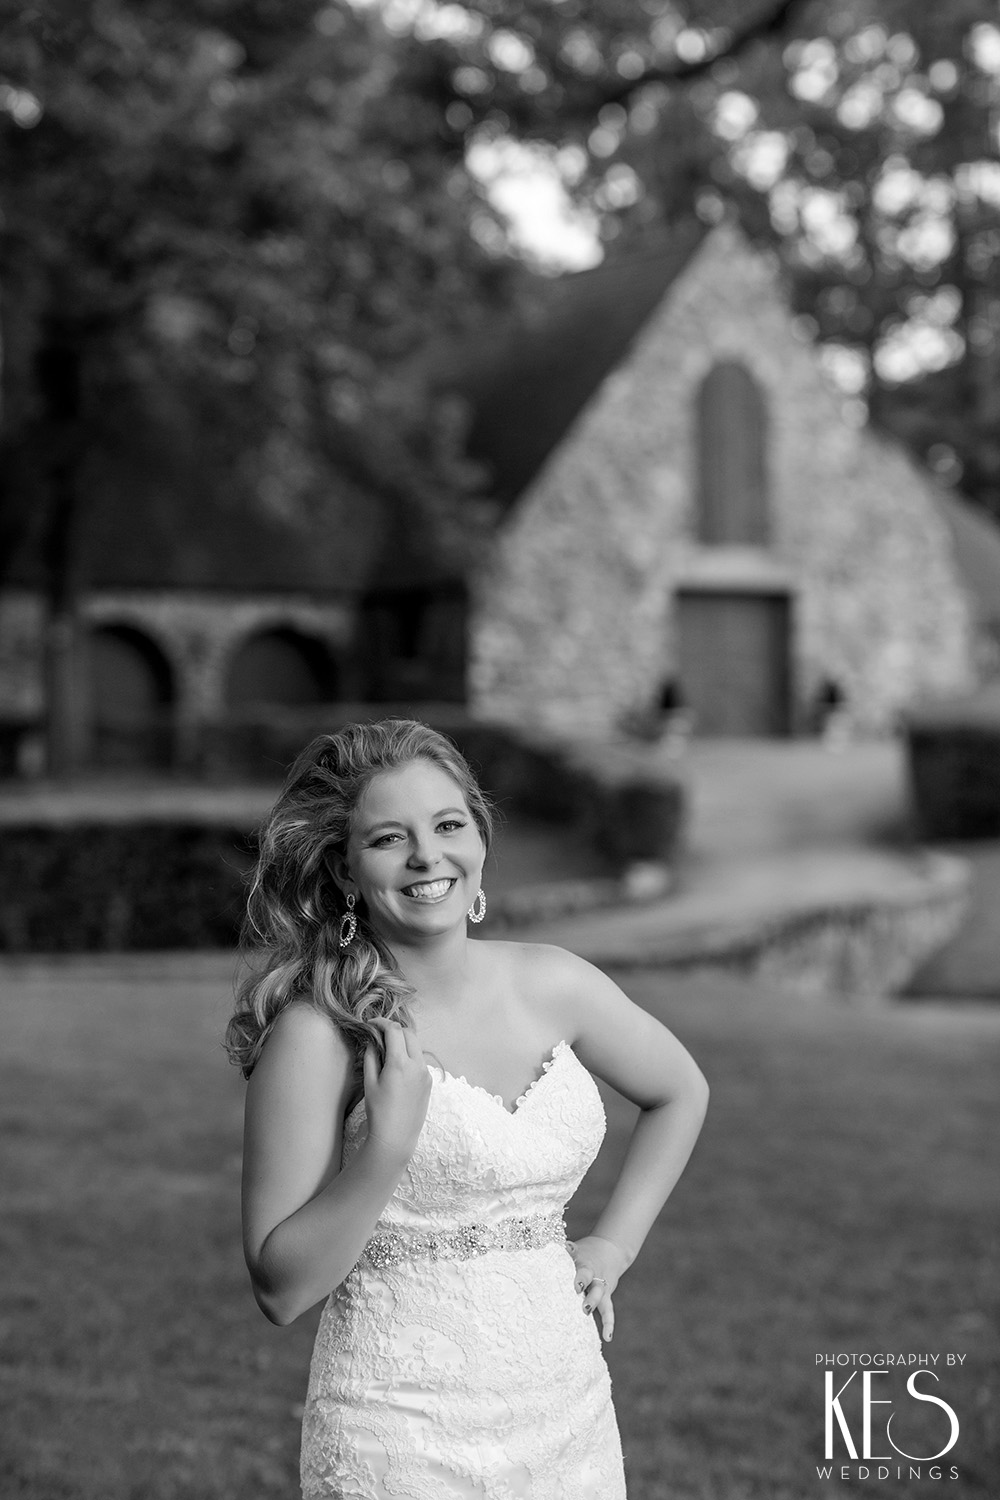 Daisy_Bridals_Castle_at_Stagecoach_19.JPG